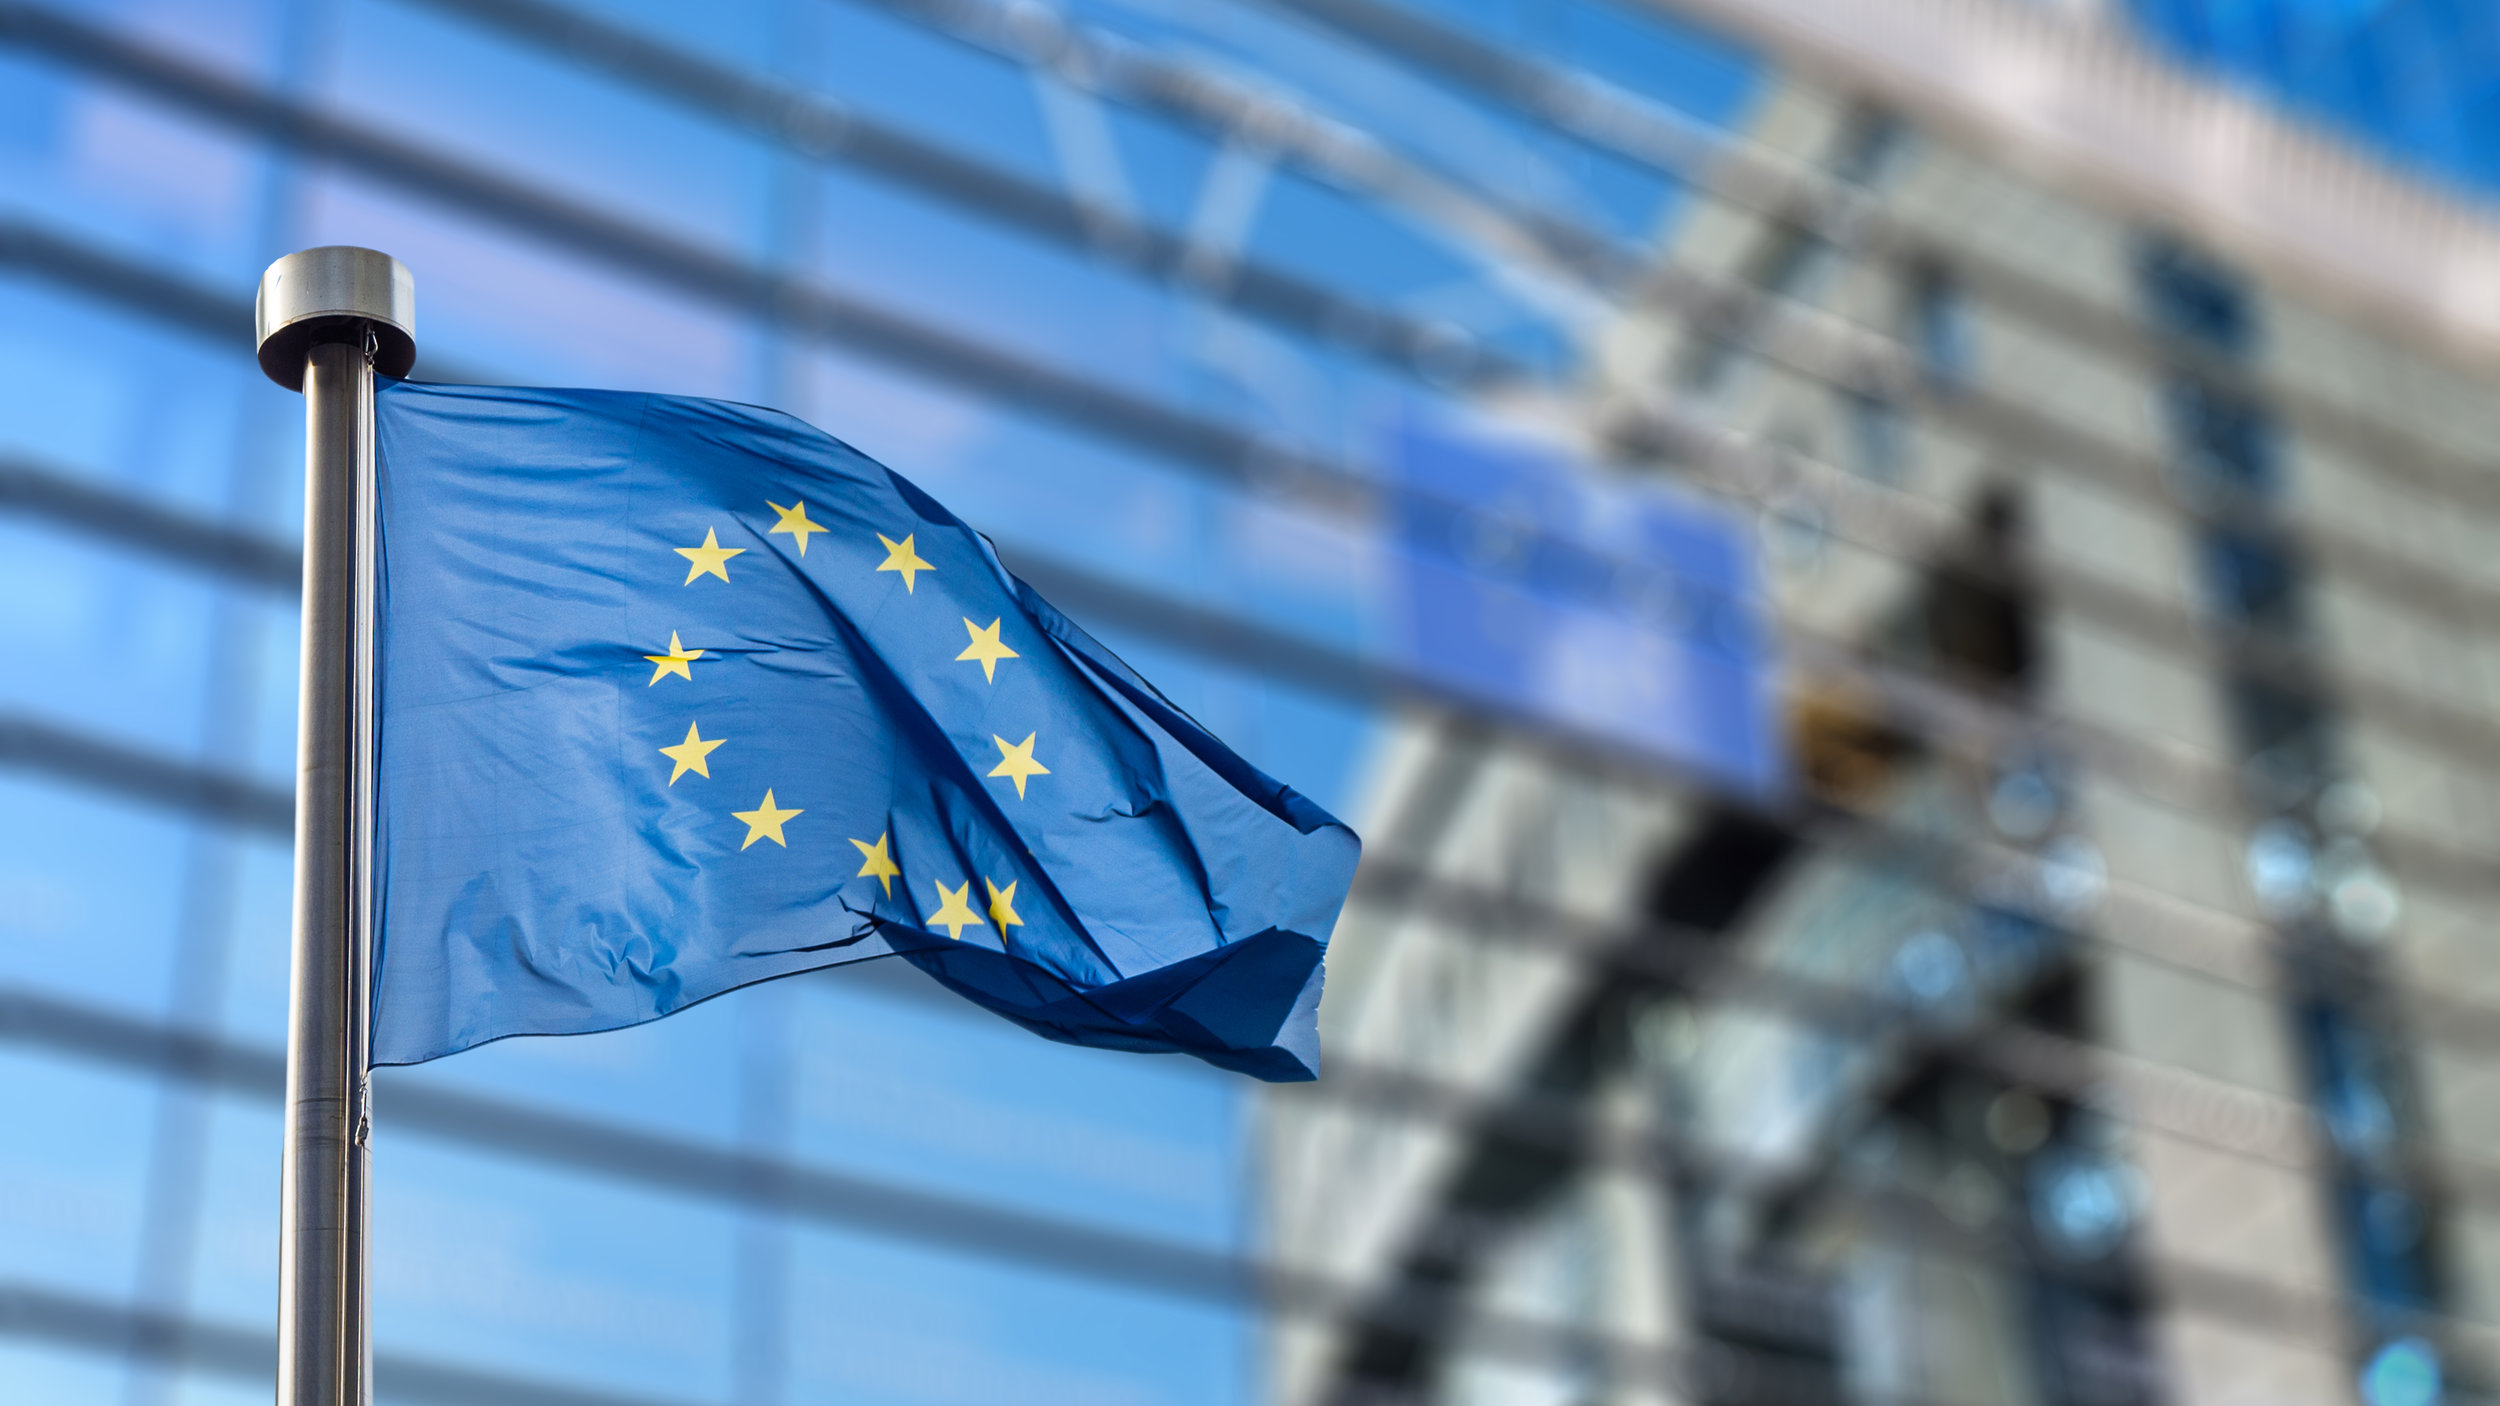 What To Make Of EU President Donald Tusk's Remarks? by business consultant and former CEO, Denyse Whillier | Built To Succeed